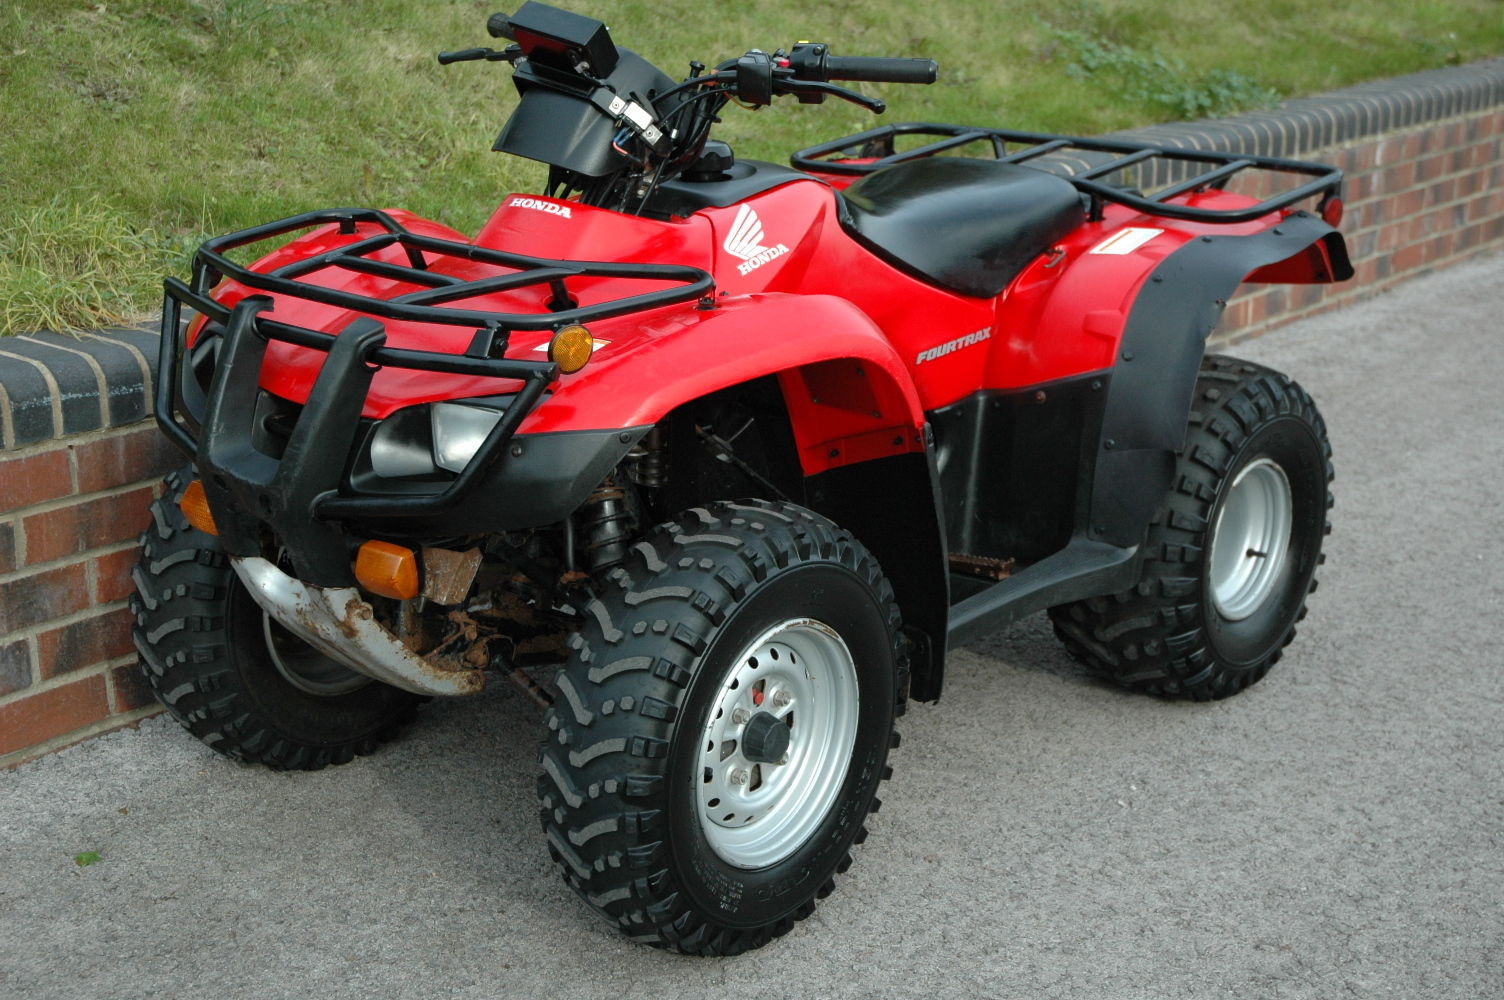 honda fourtrax trx250tm quad bike atv road registered Honda TRX250TM Controls Diagram Honda TRX250TM Clutch